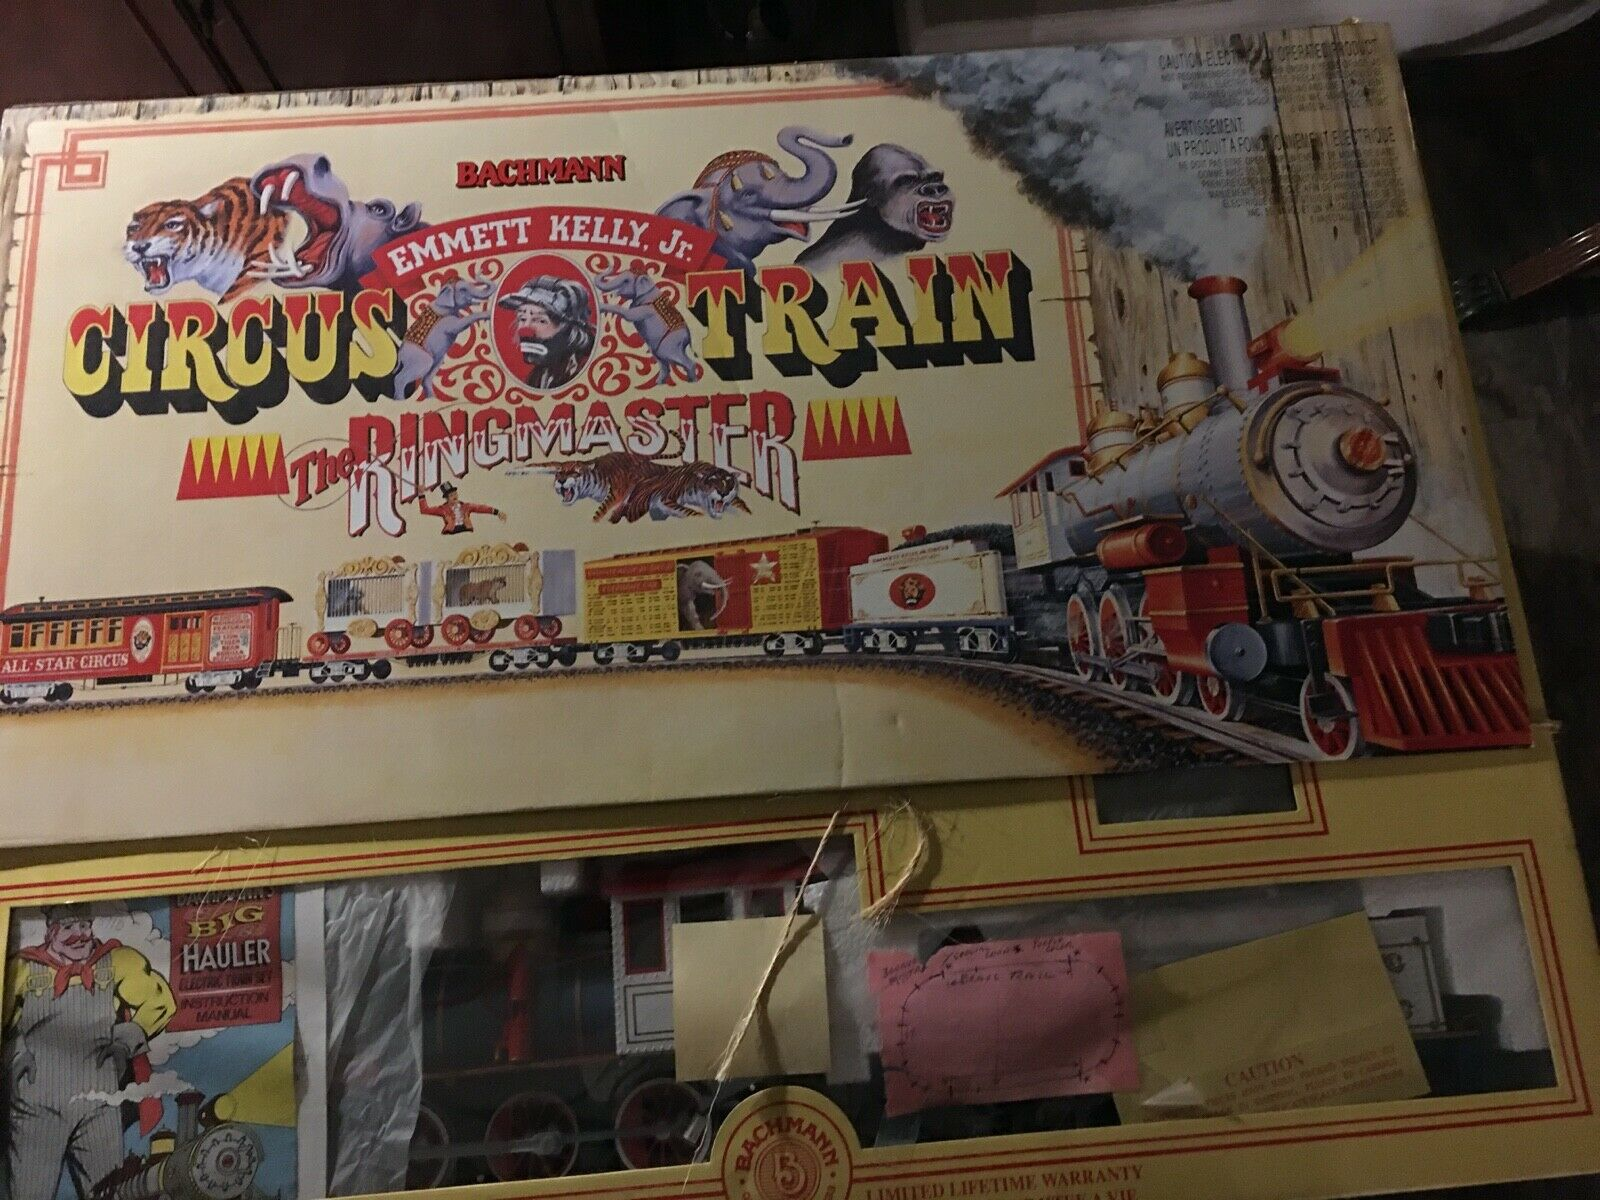 Bachuomon Emmett Kelly Jr Circus Train Set The Ringmaster  90020 completare G Scale